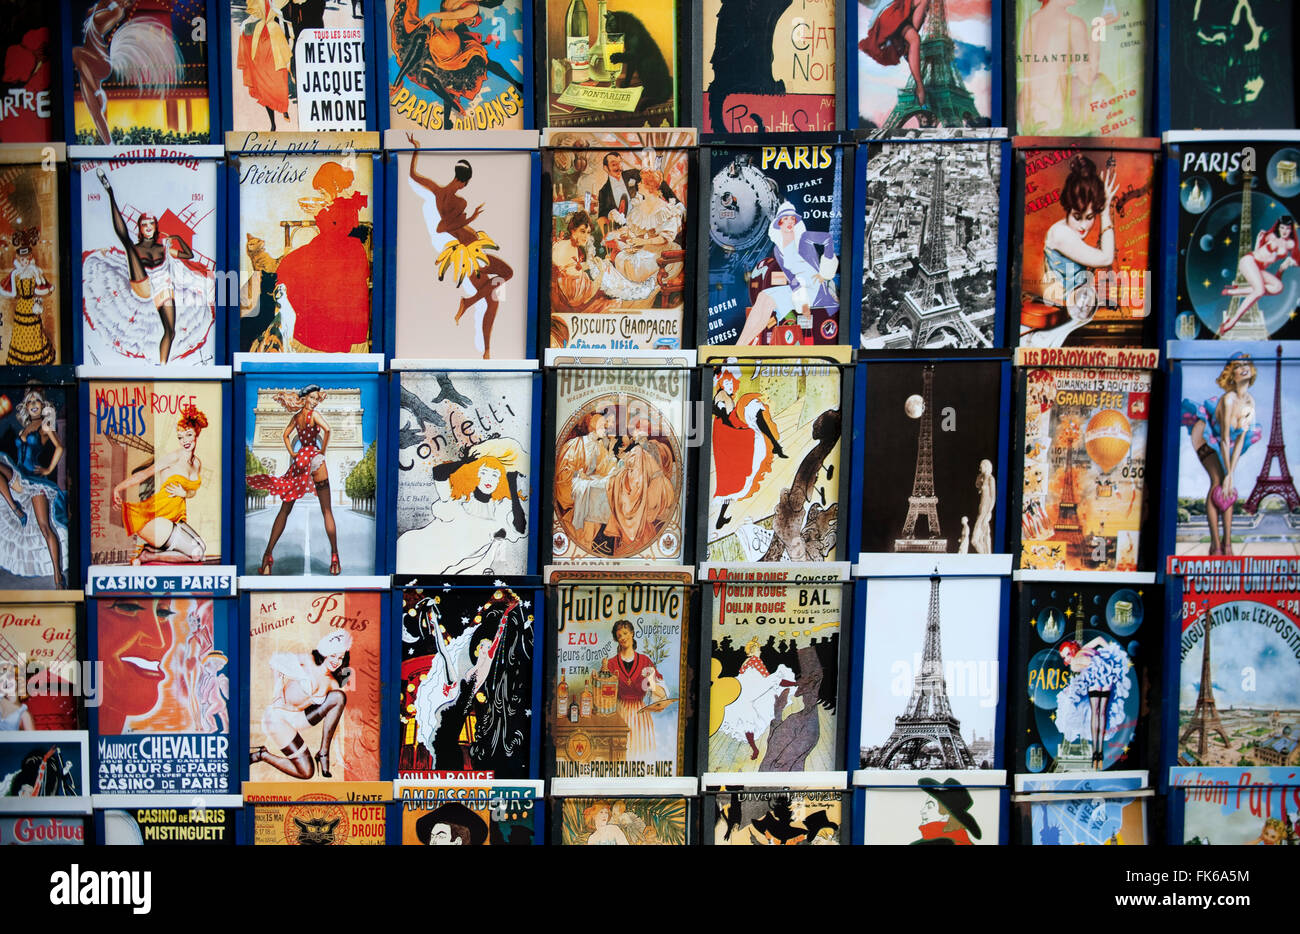 Postcards on the traditional stalls on the Seine, Paris, France, Europe - Stock Image